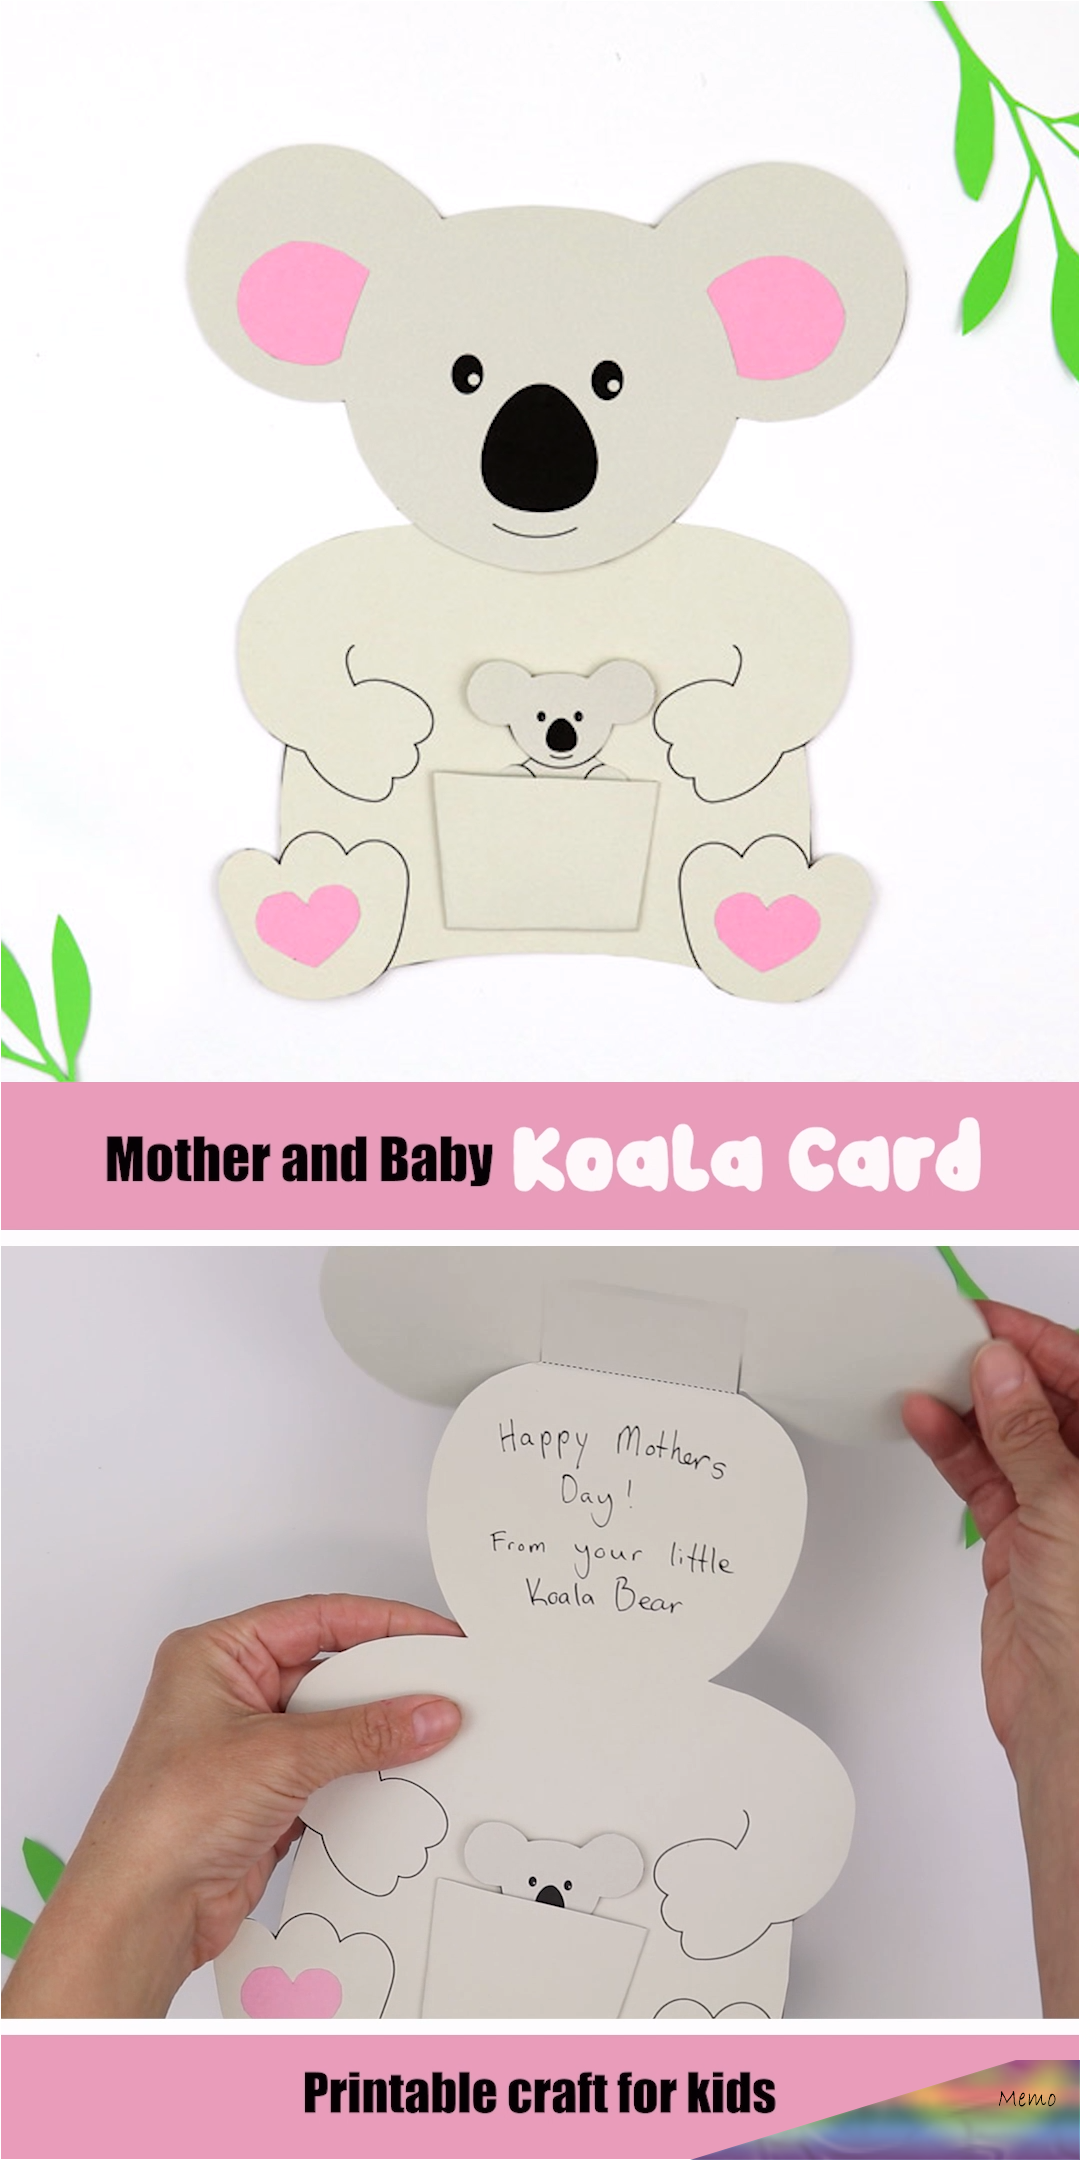 Make An Adorable Koaoa Card For Mothers Day This Printable Template Features A Mother Koala With A Baby In It Koala Craft Mothers Day Card Template Kids Cards